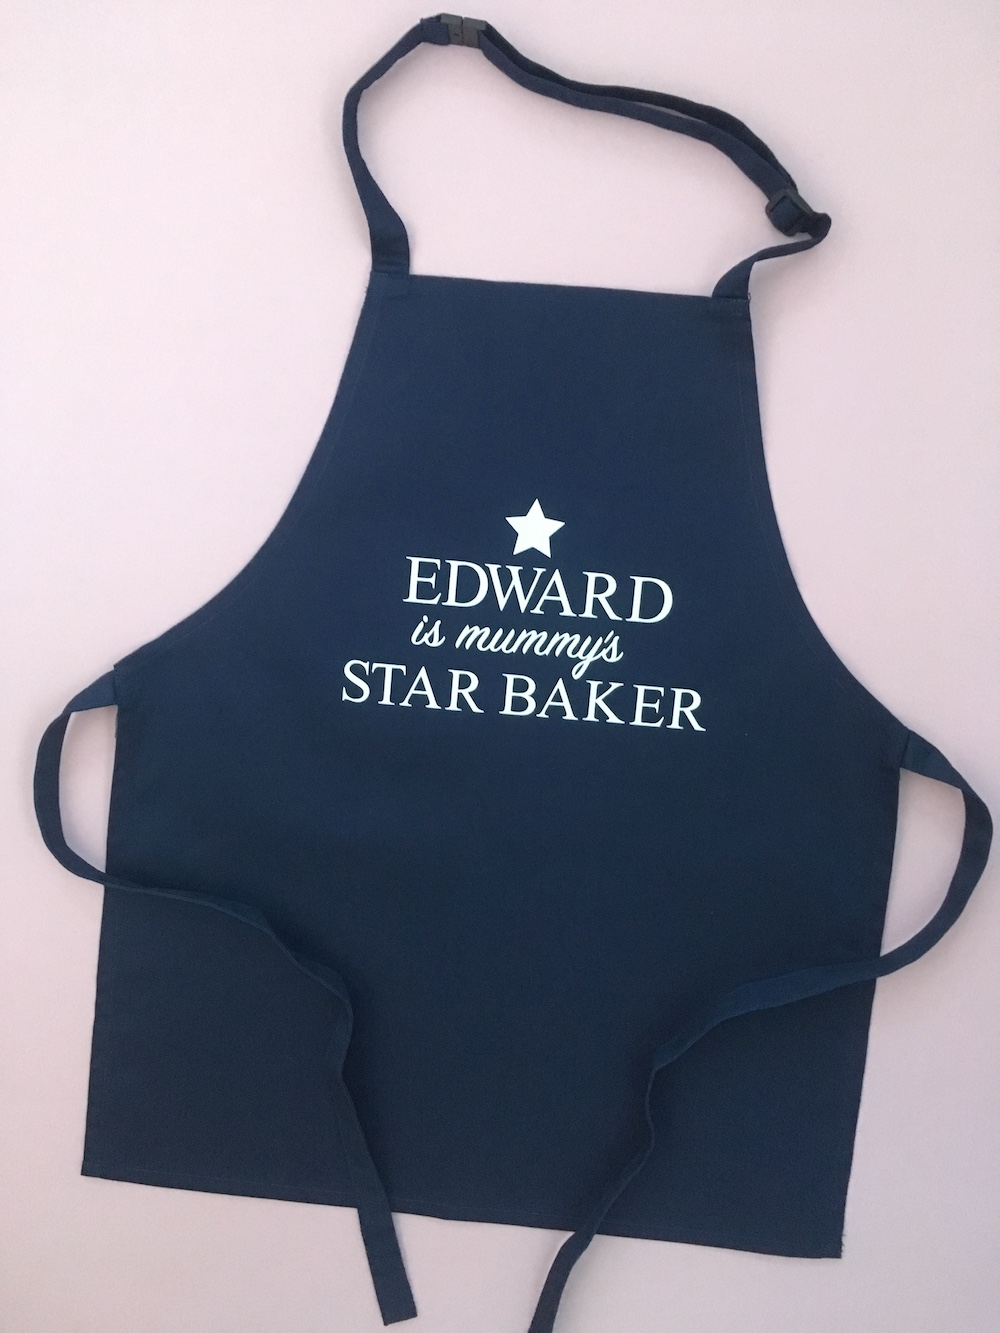 Star Baker Childrens Apron 3 – 5 YEARS